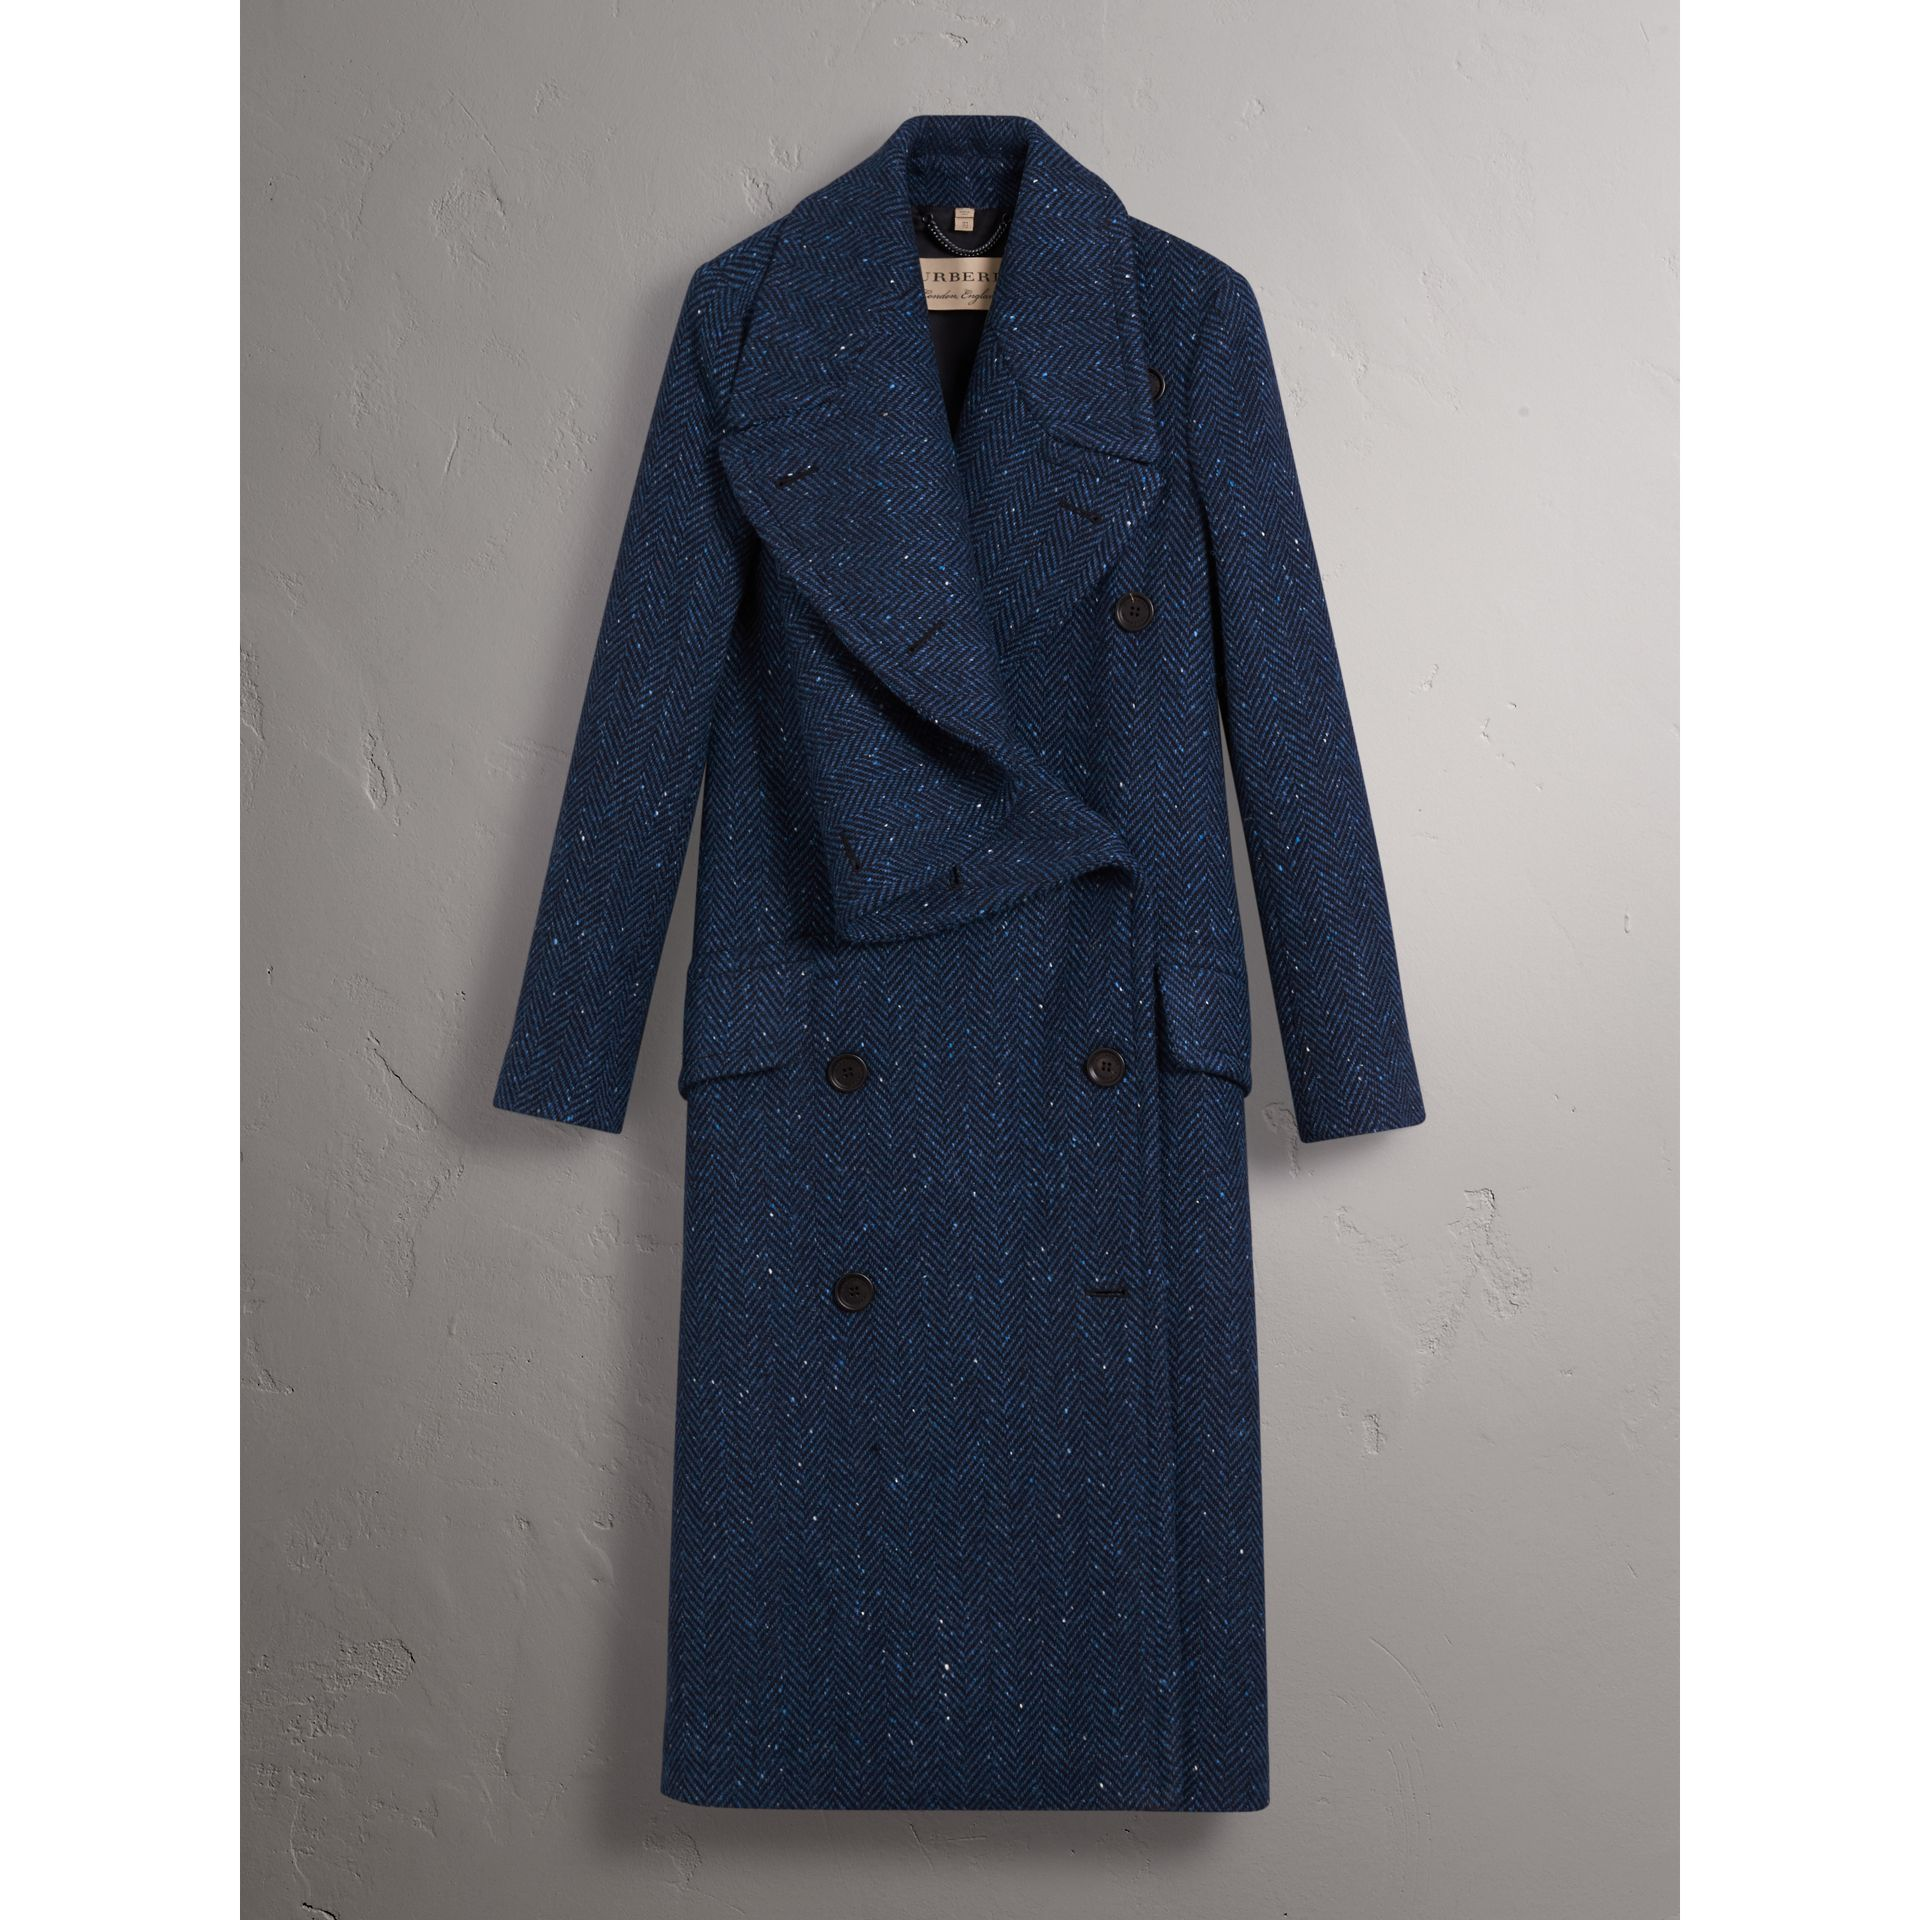 Herringbone Wool Cashmere Tweed Asymmetric Coat in Navy - Women | Burberry - gallery image 4